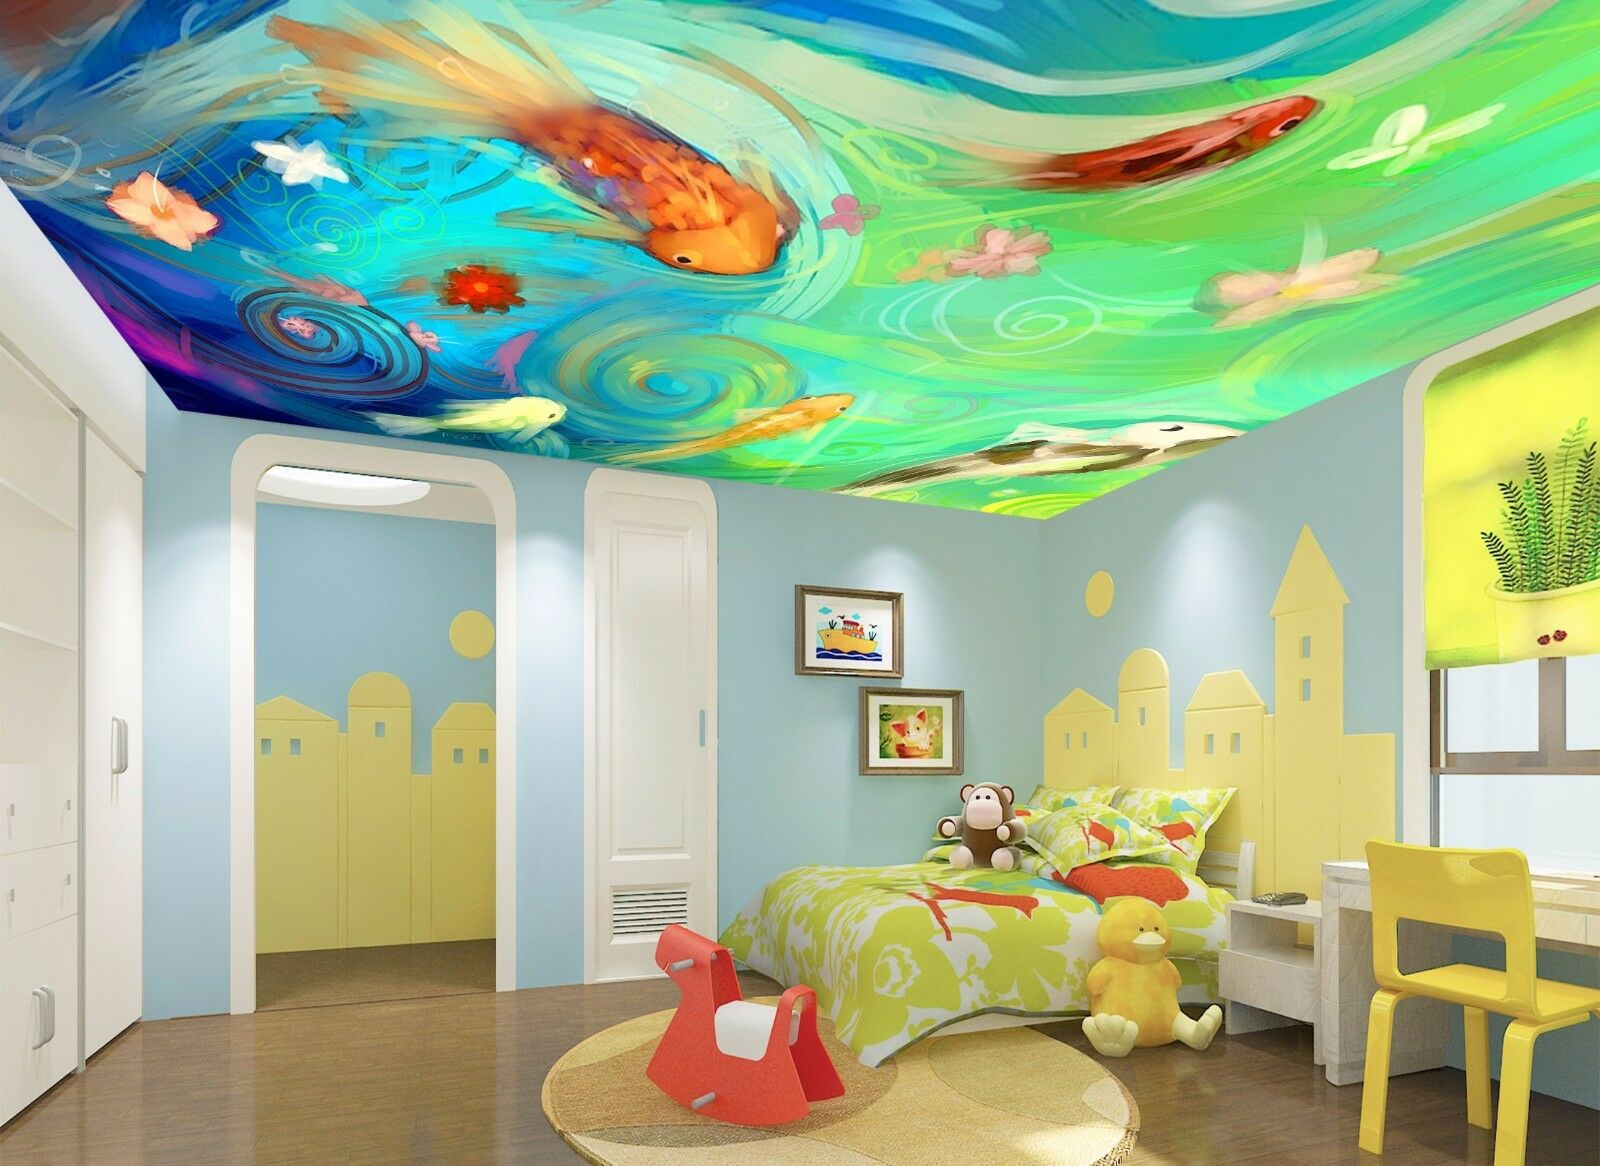 3D Colour Carp Ceiling WallPaper Murals Wall Print Decal Deco AJ WALLPAPER AU